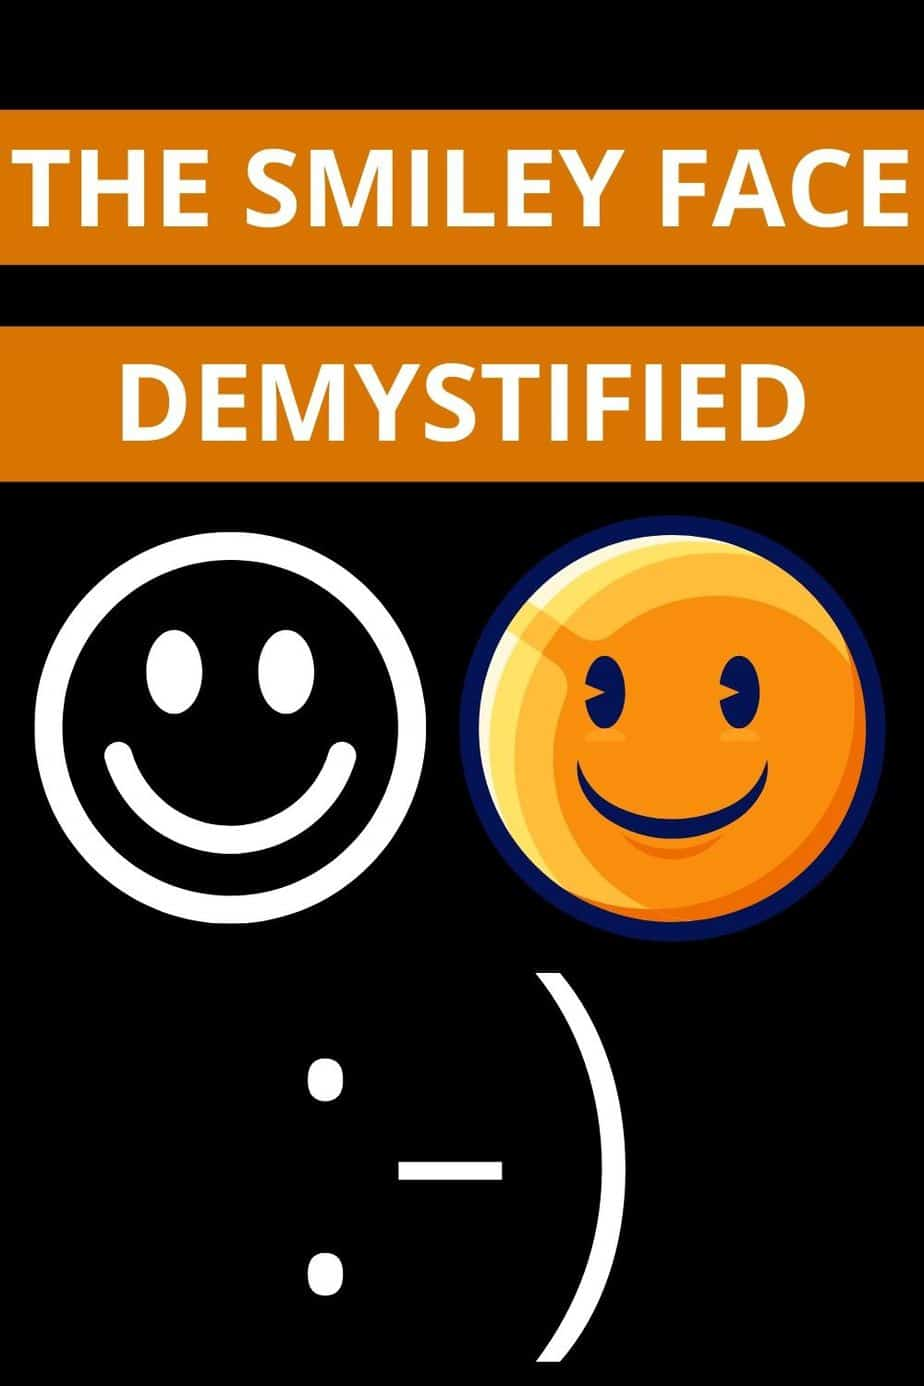 The Smiley Face Demystified